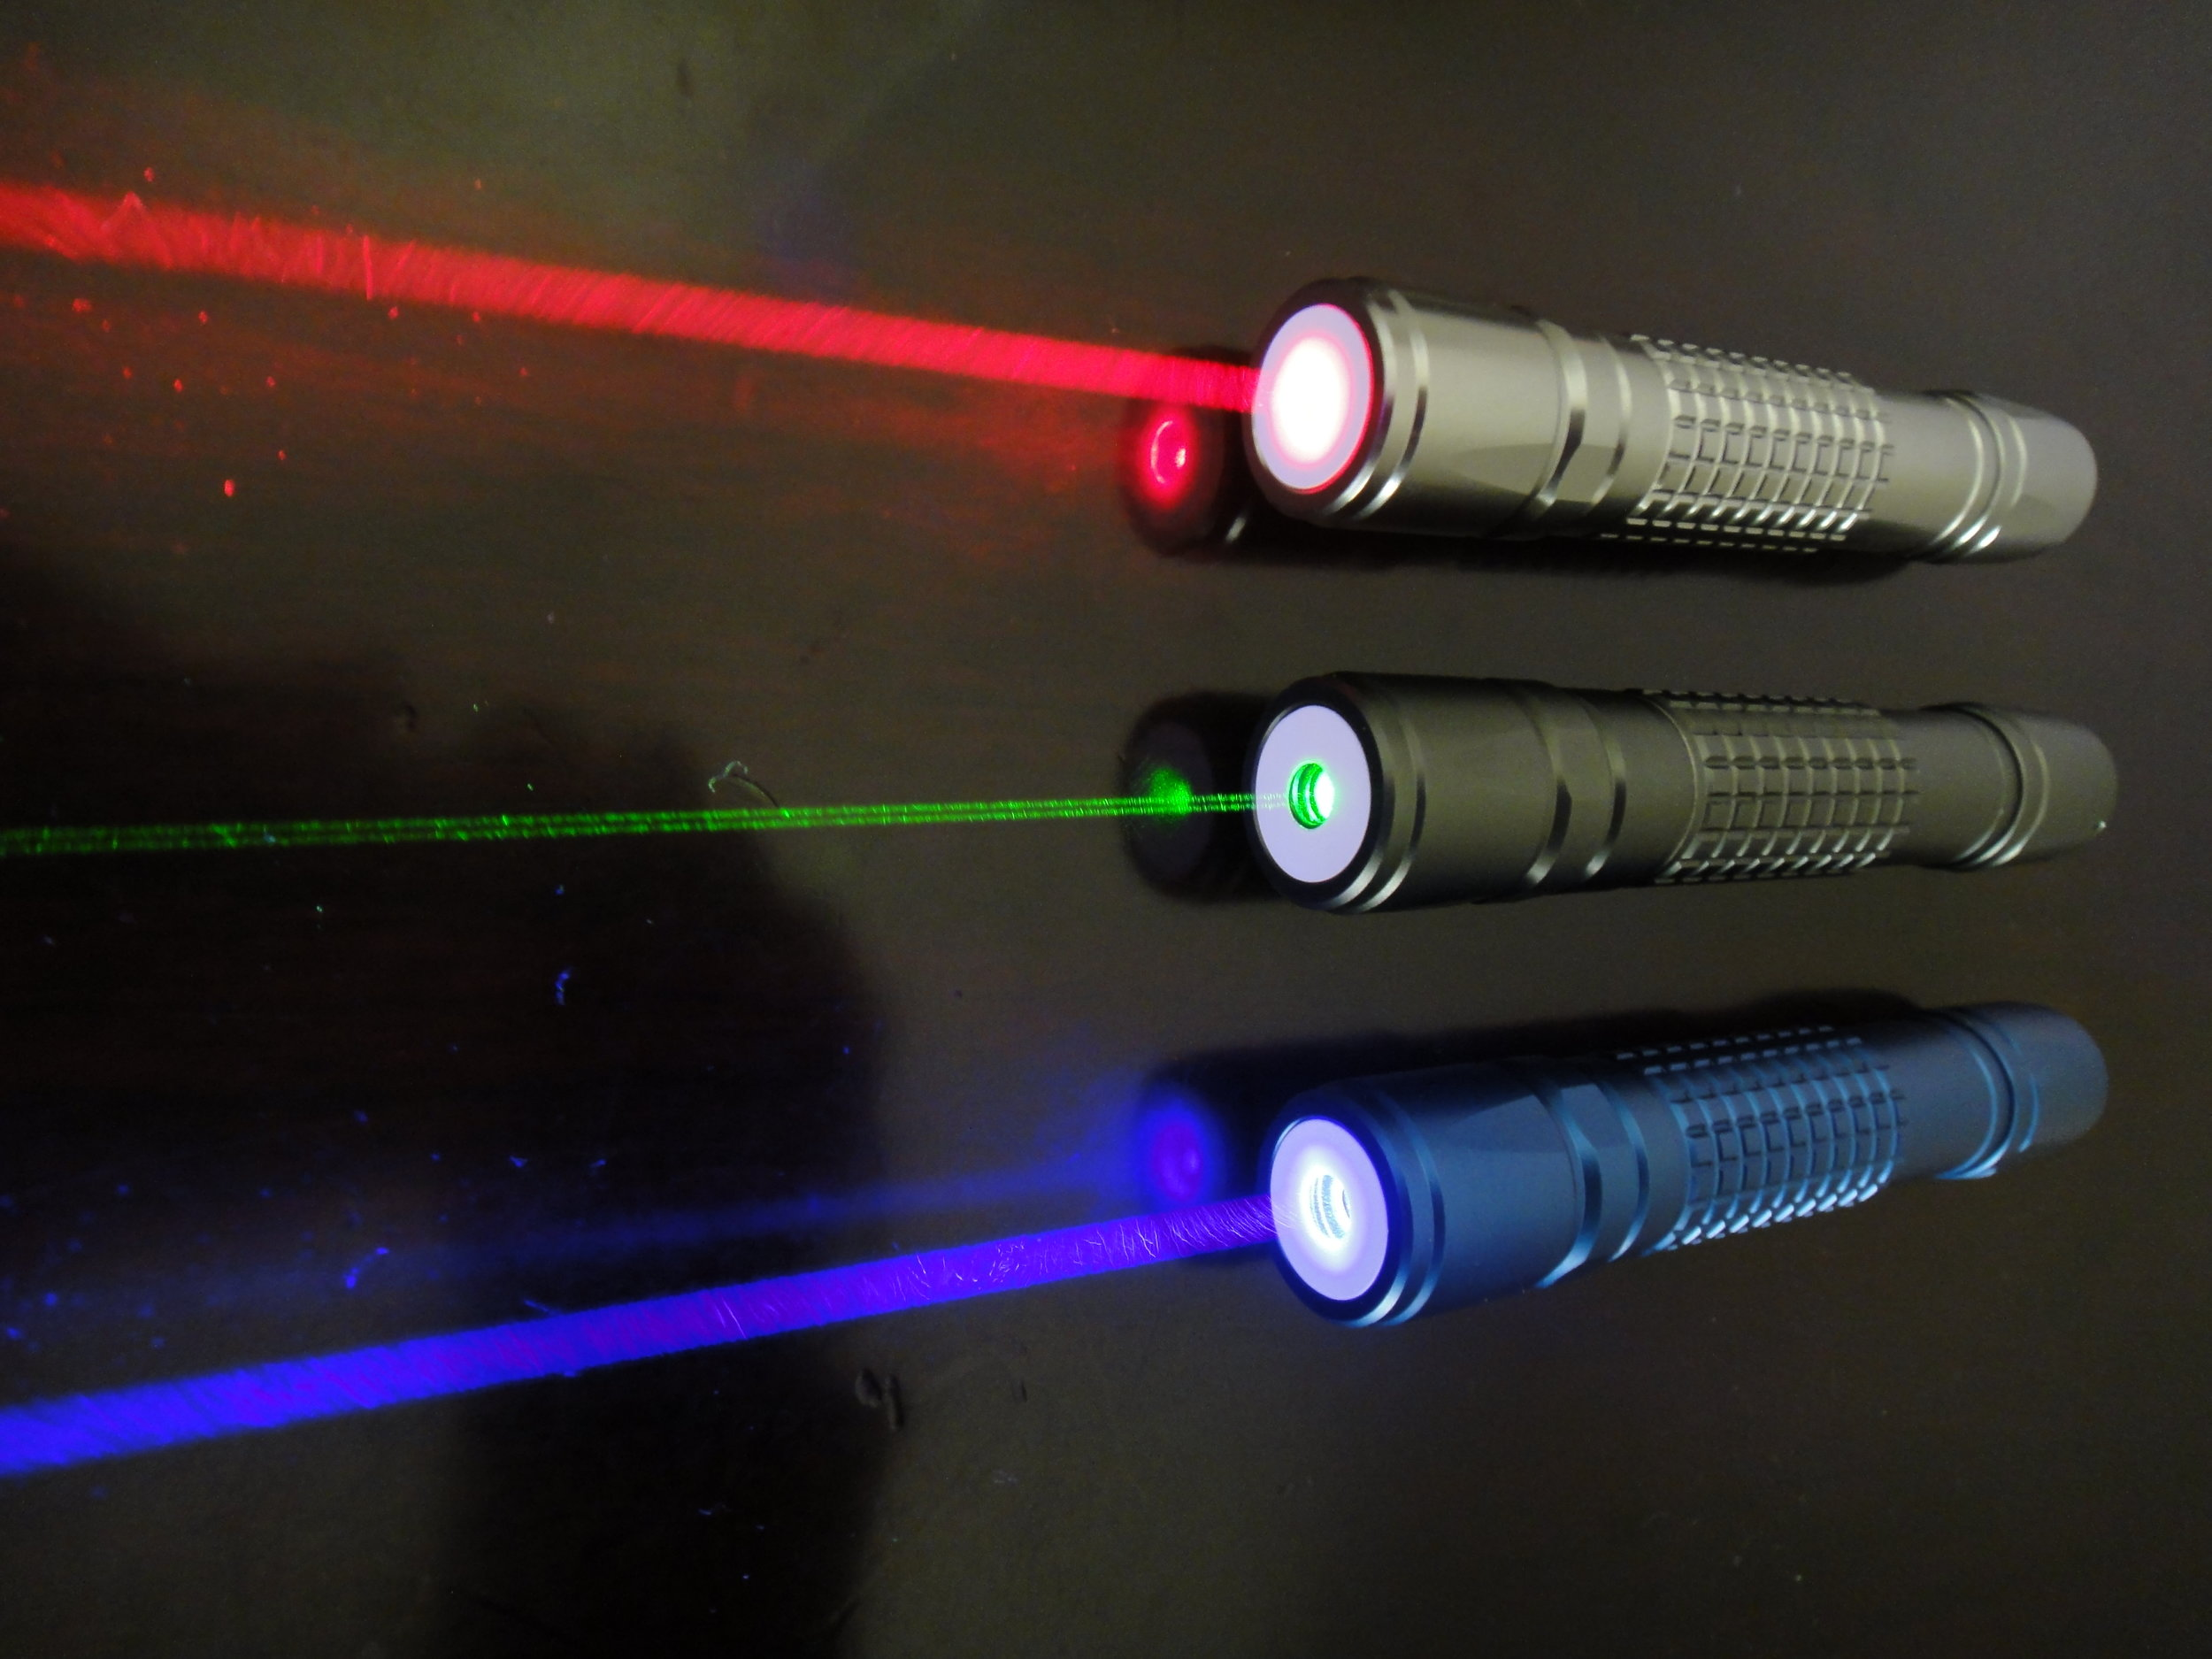 Best Laser Pointer   Disclaimer: There are affiliate links in this post. This means that at no cost to you, I will receive a small commission if you purchase through my link. I will only ever promote the products and services that I trust and 100% recommend. You may read my full  disclosure policy  for more information. Thanks for supporting my business in this way.